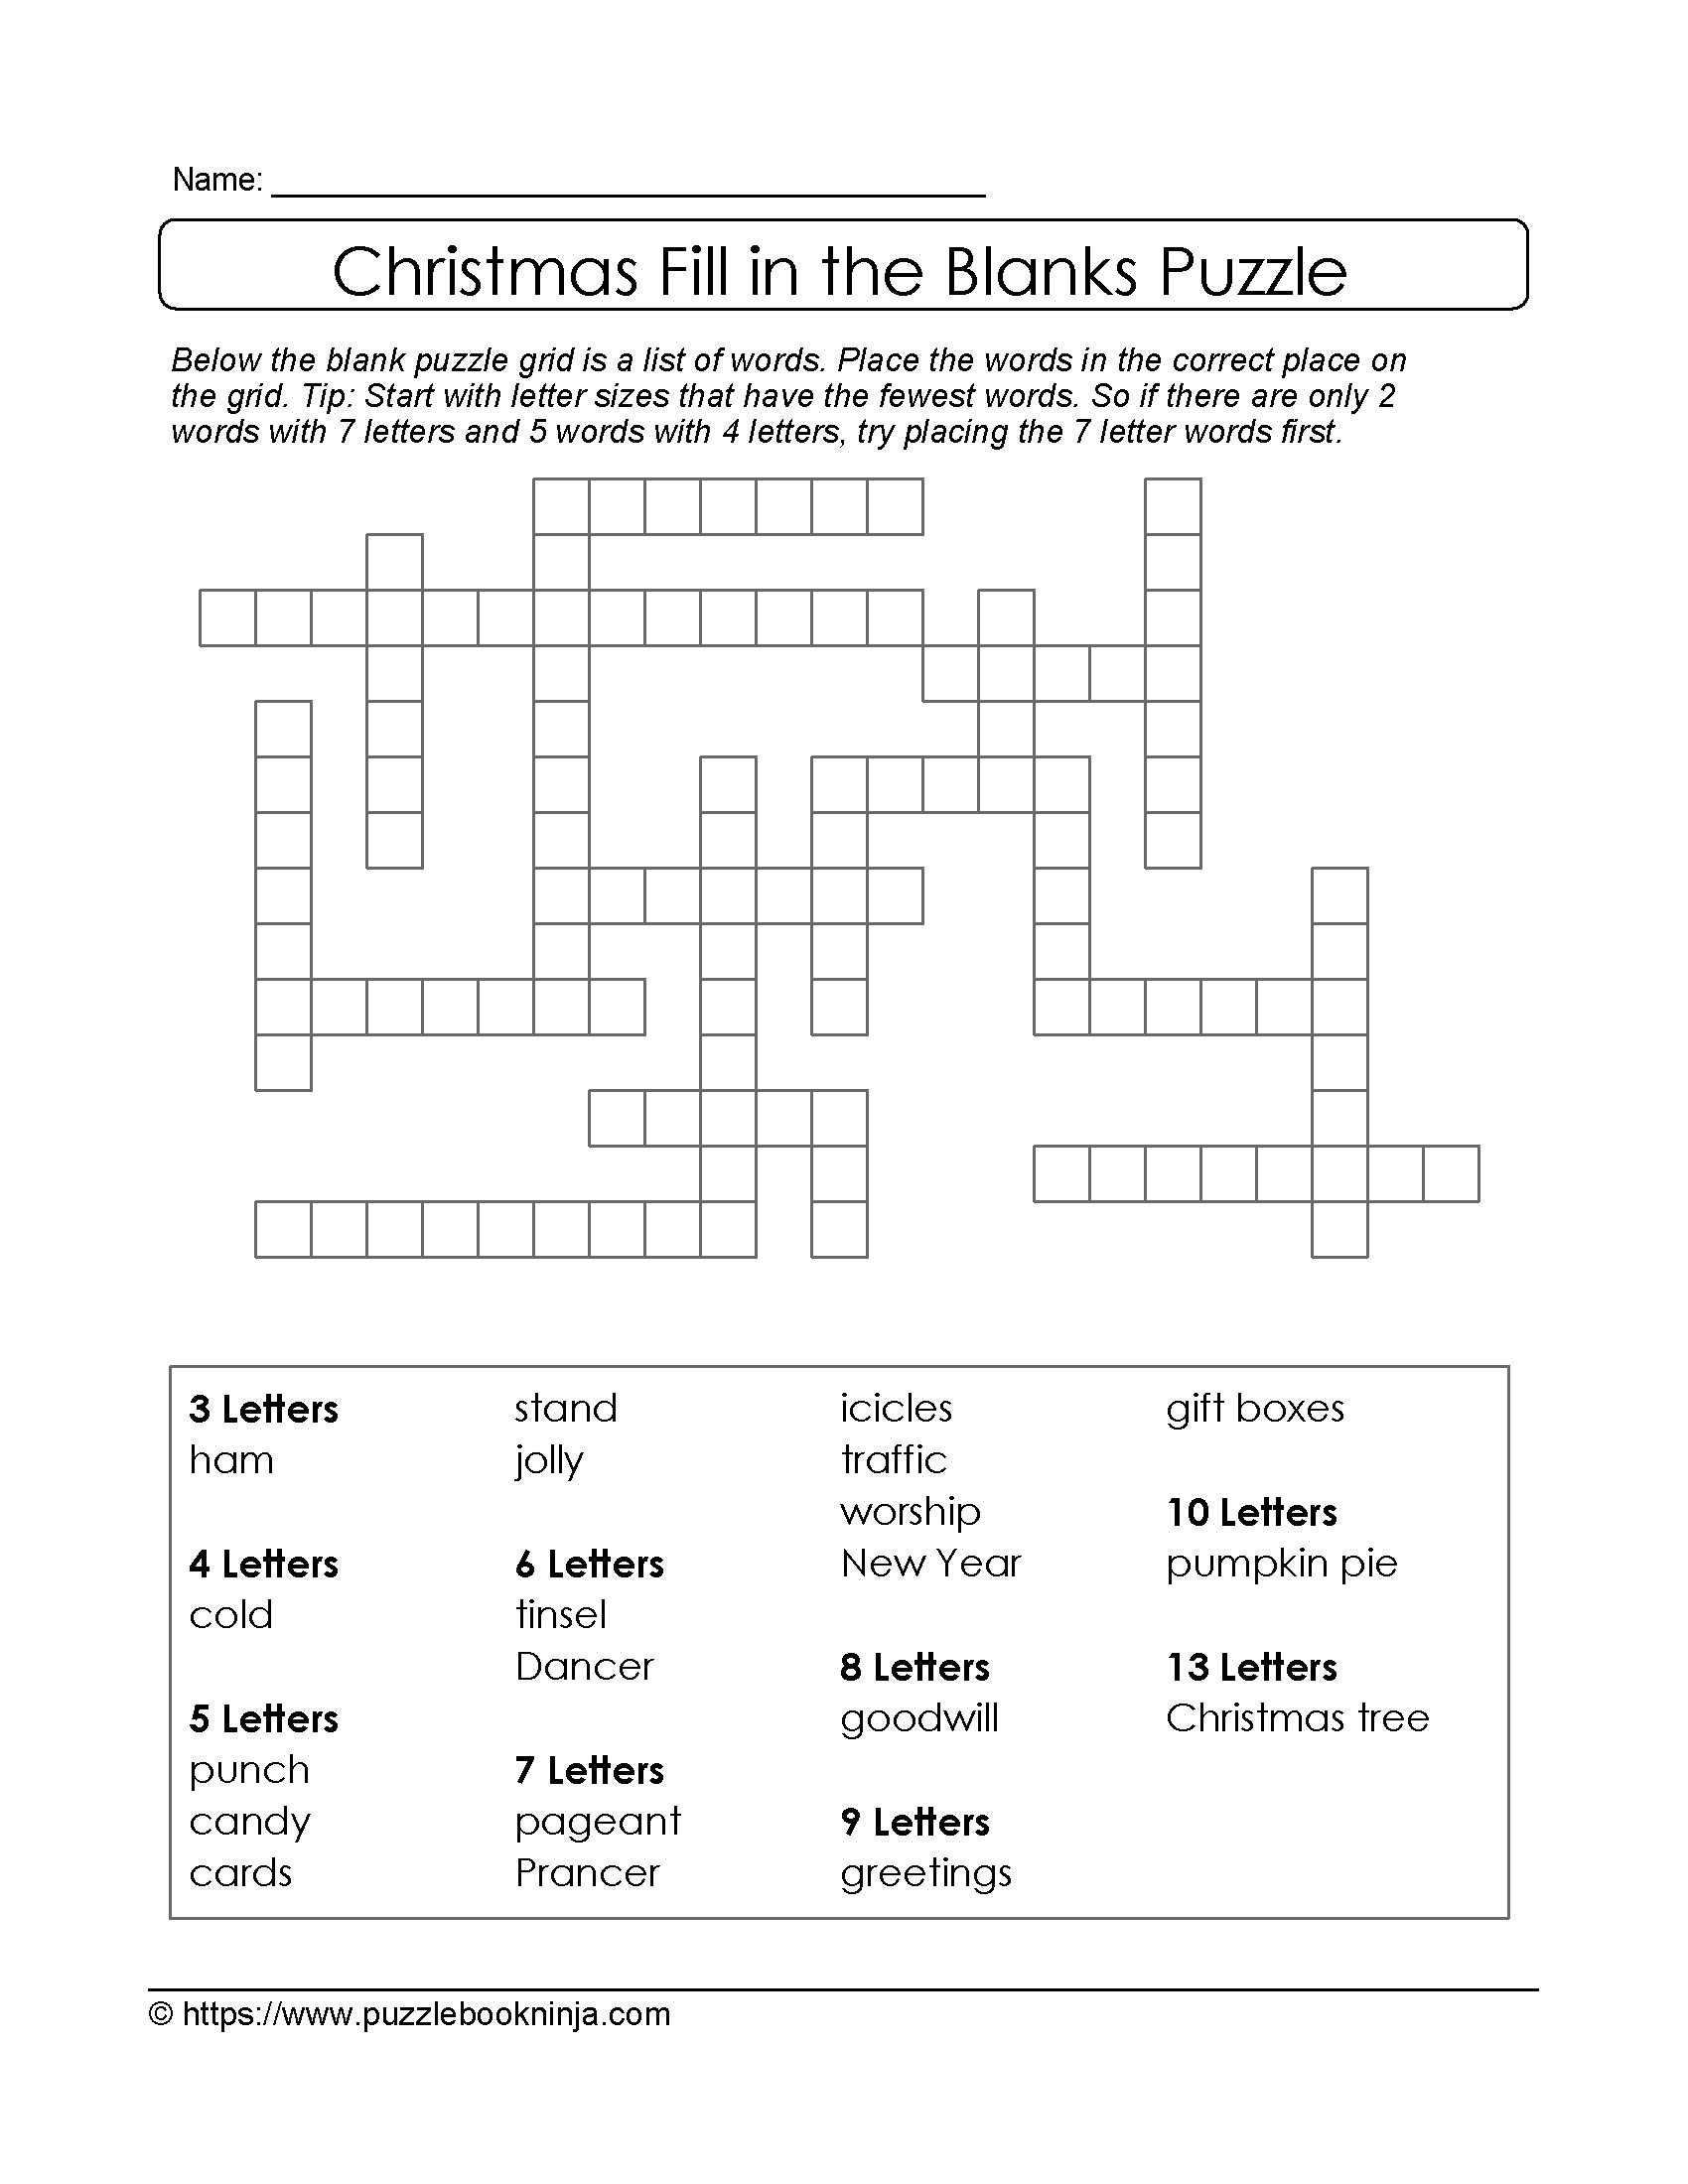 Freebie Xmas Puzzle To Print. Fill In The Blanks Crossword Like - Blank Crossword Puzzle Grids Printable